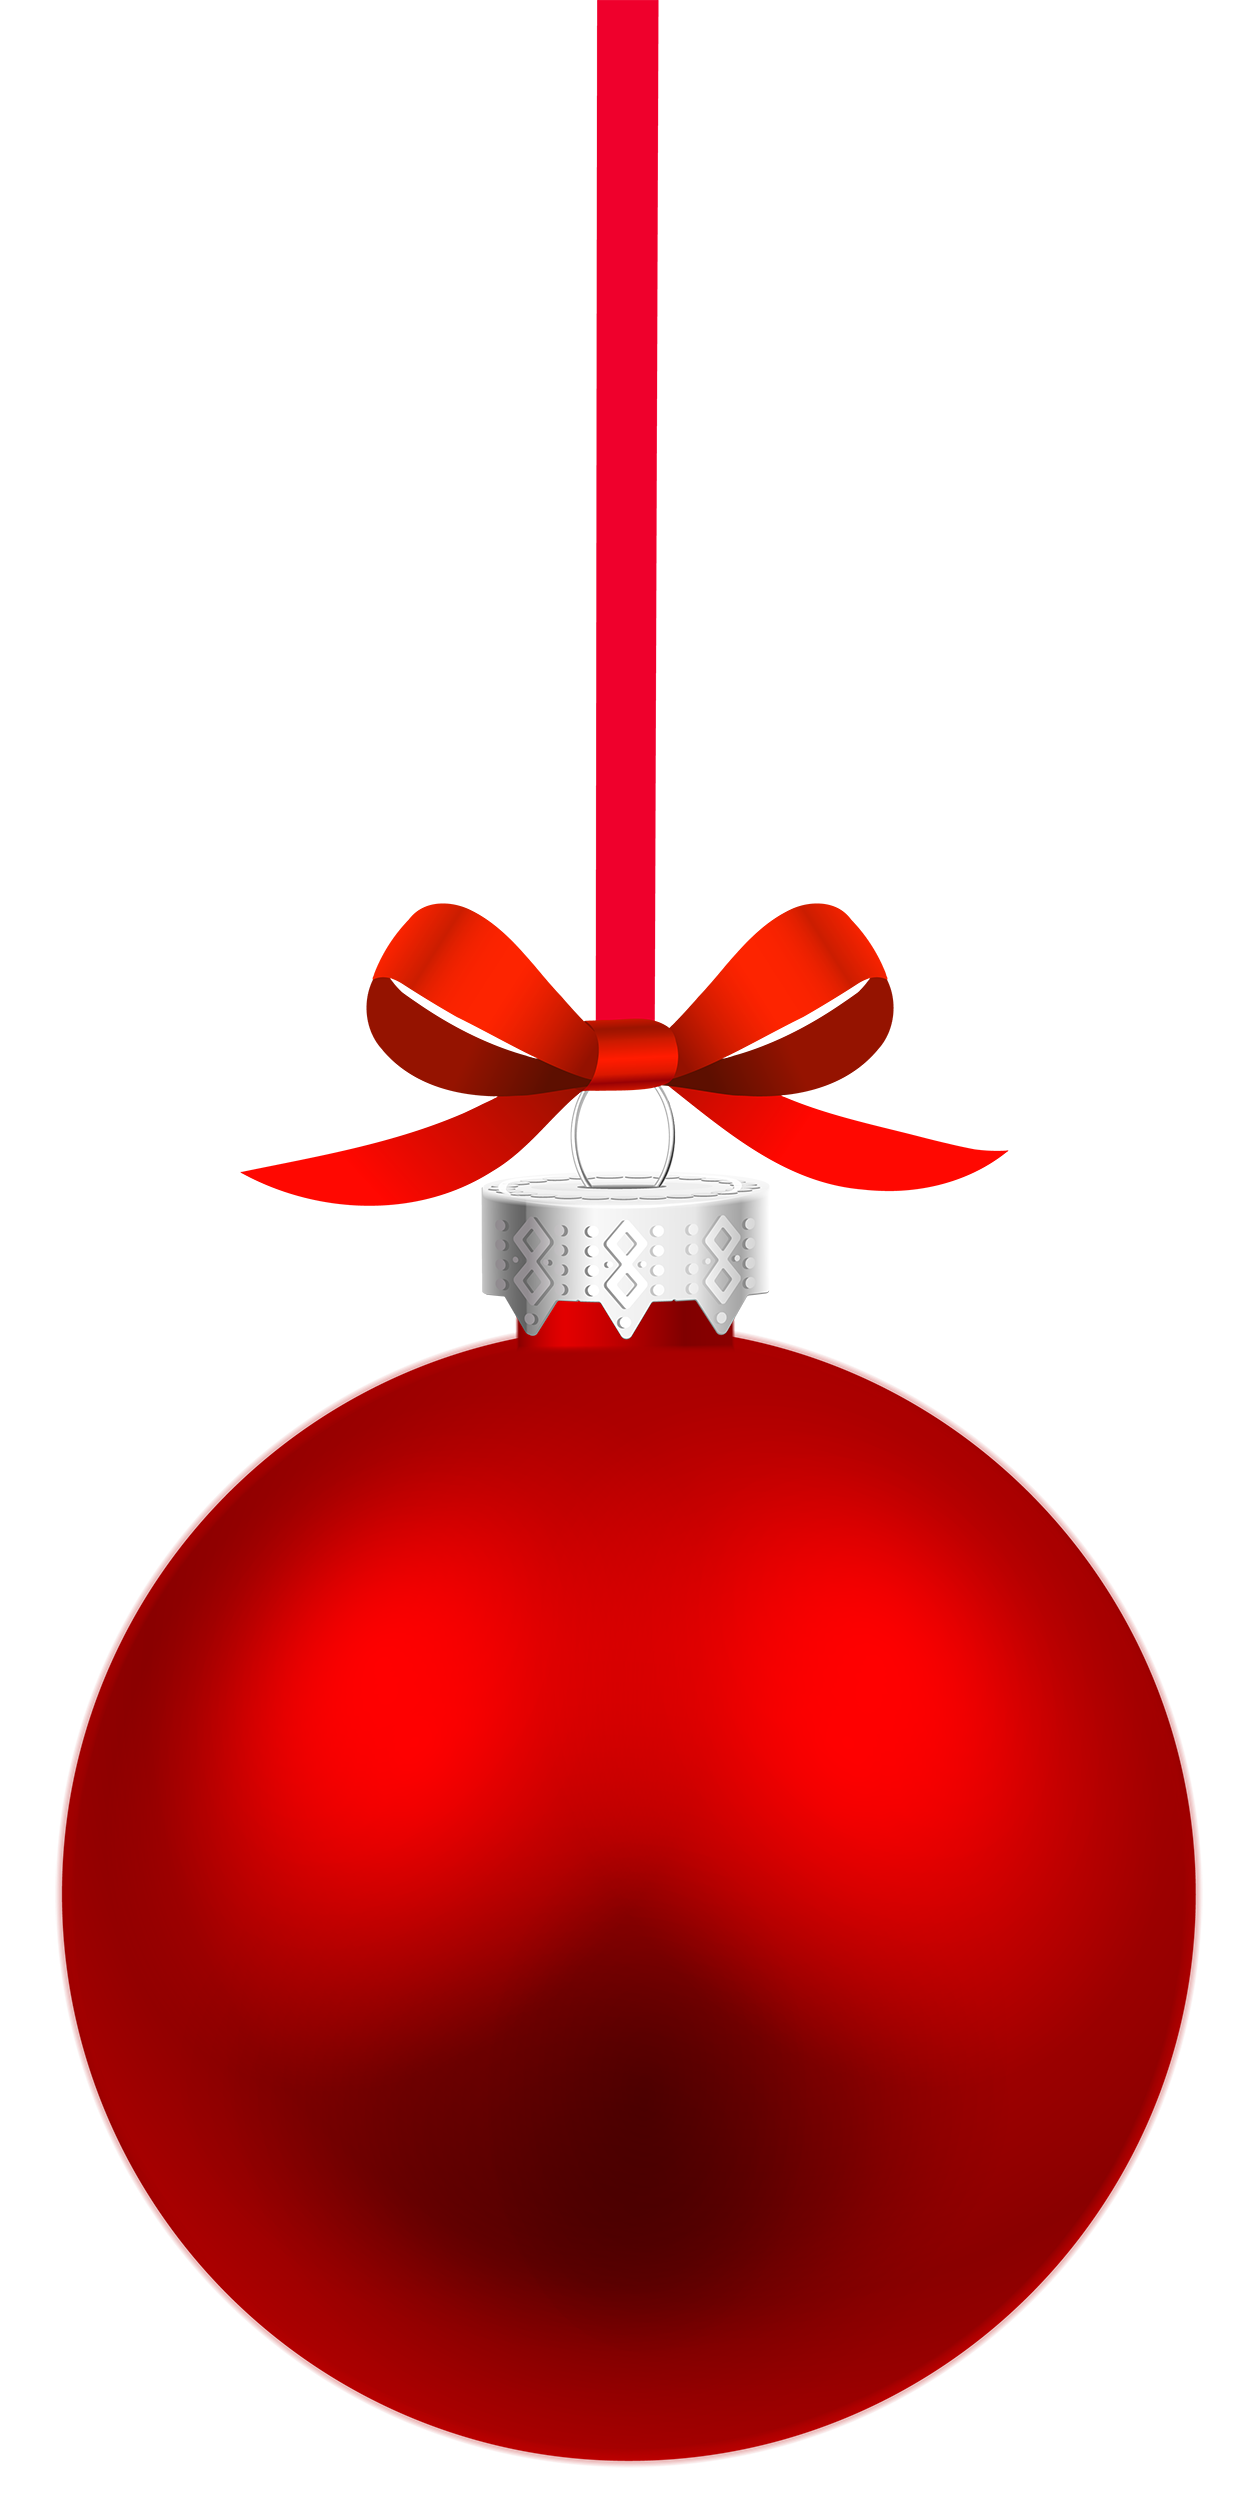 Red ornaments png. View source image misc